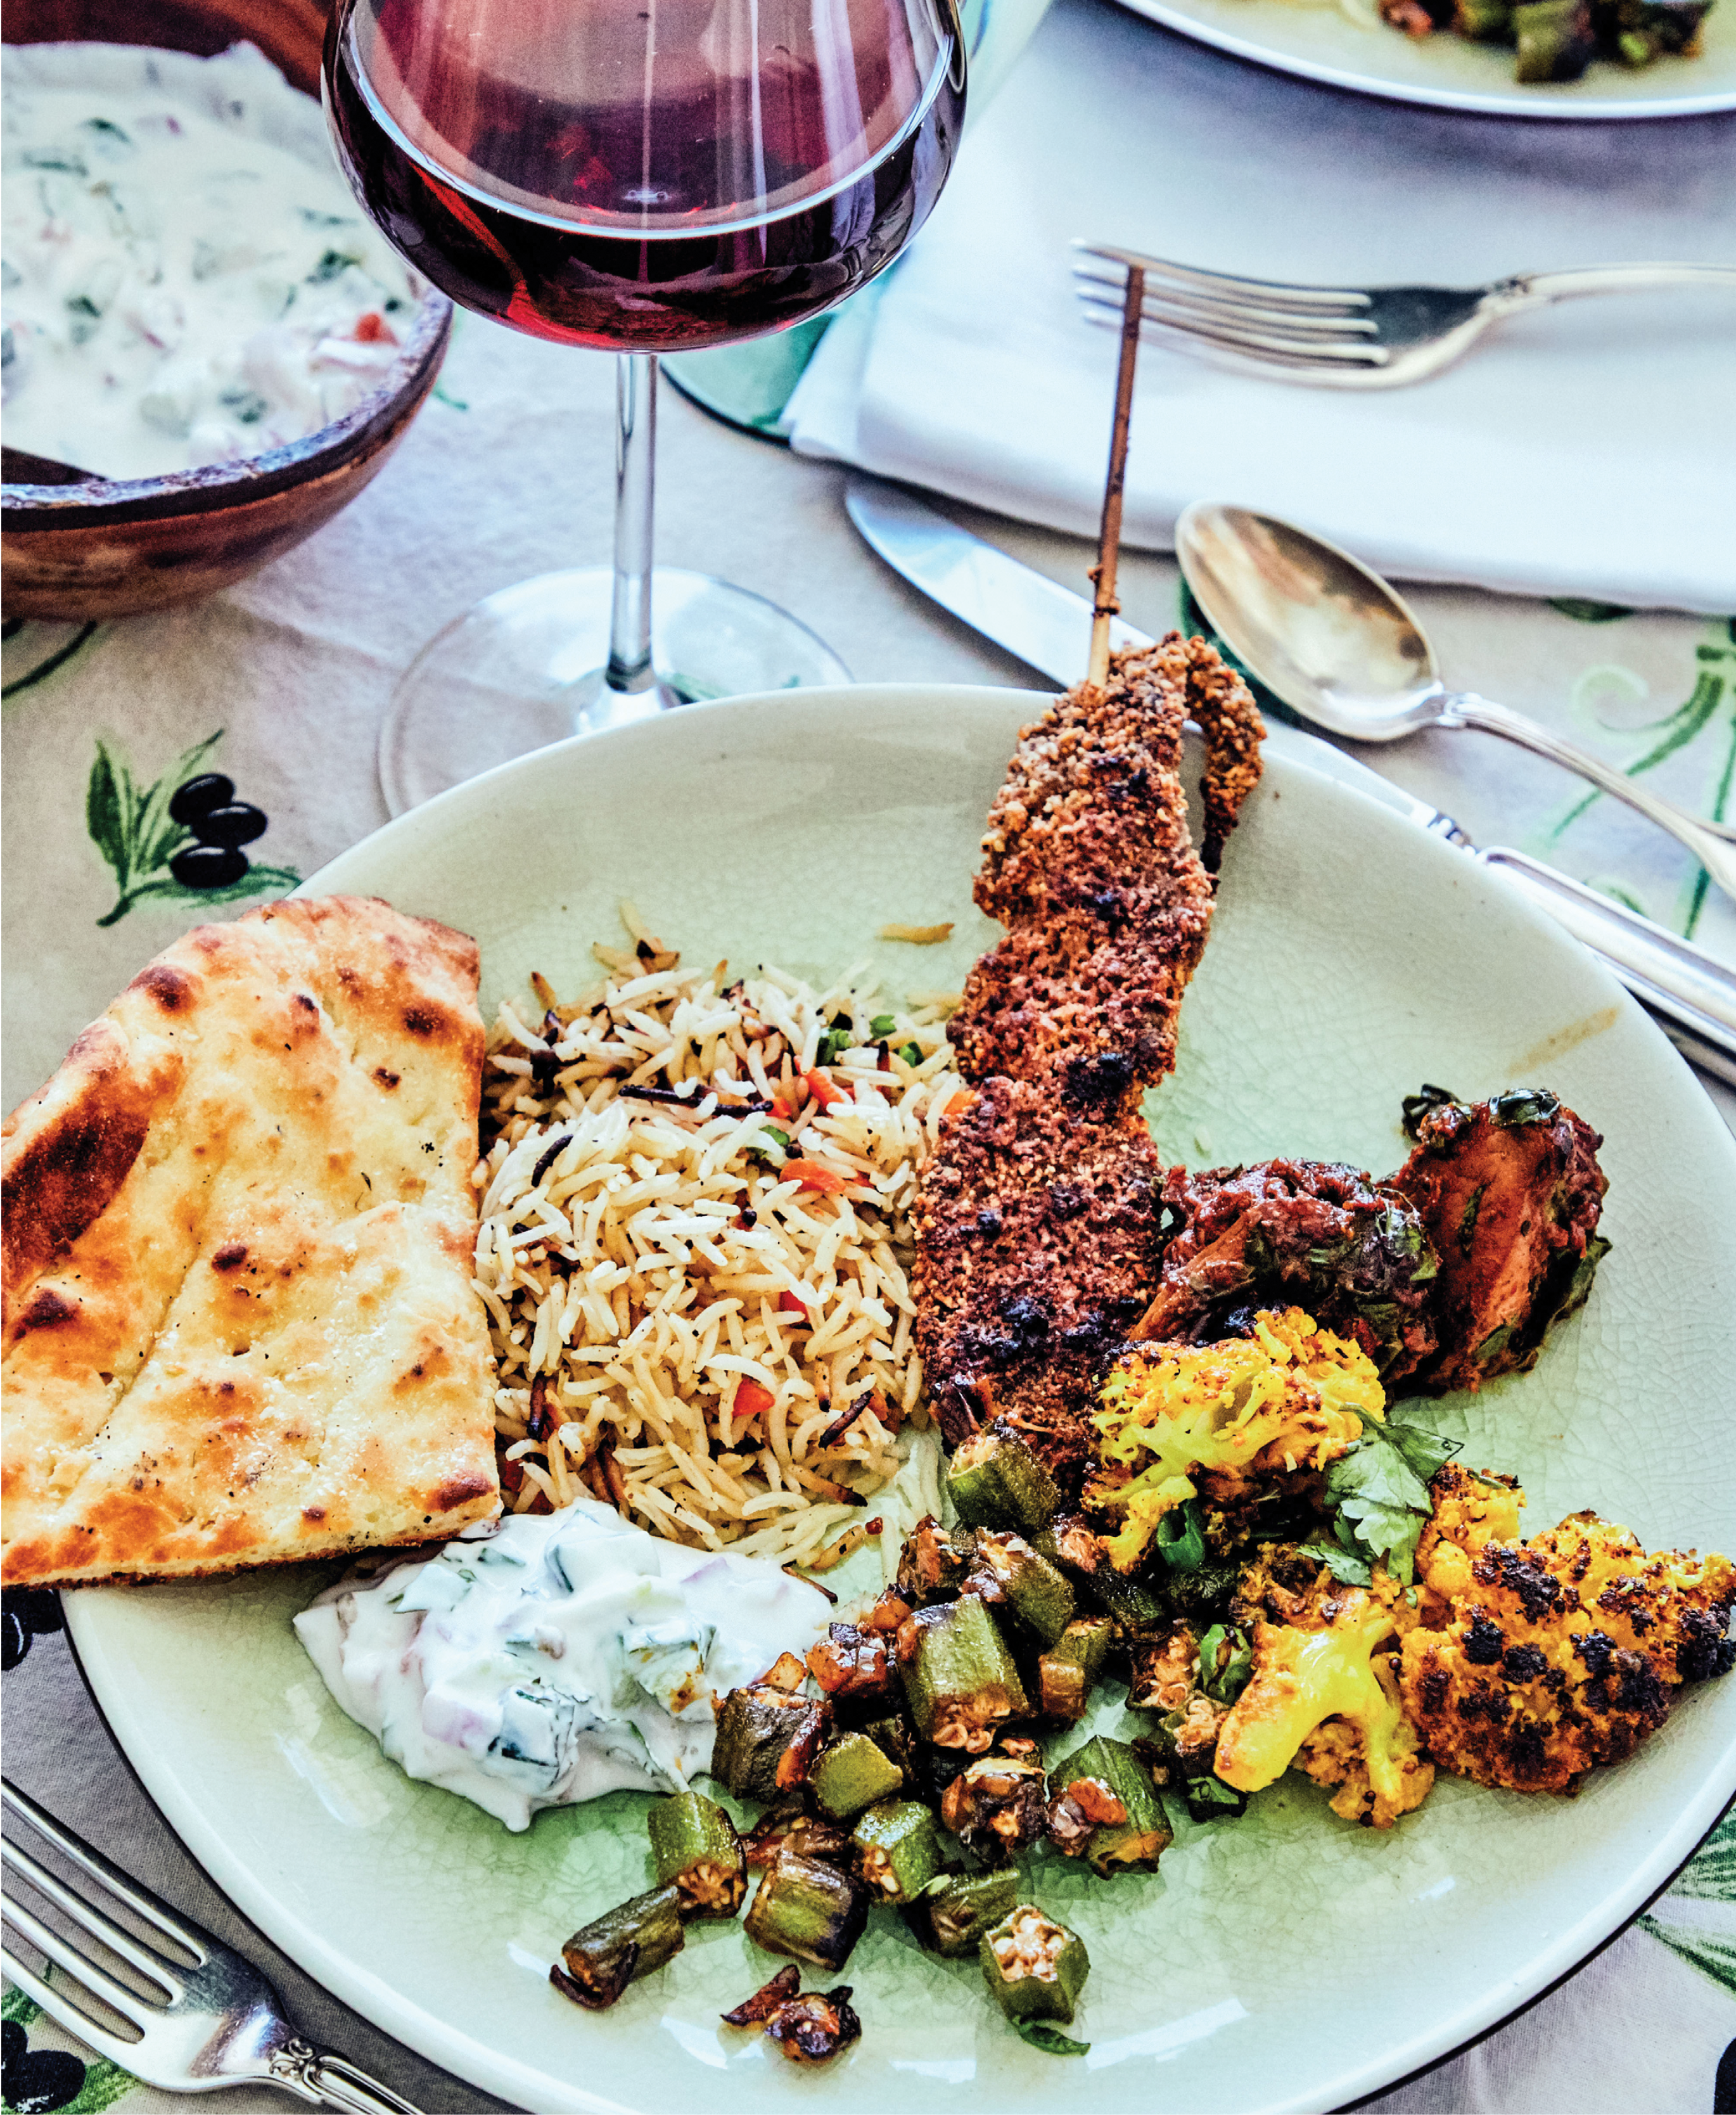 A coalescing of flavors from Nigeria and India